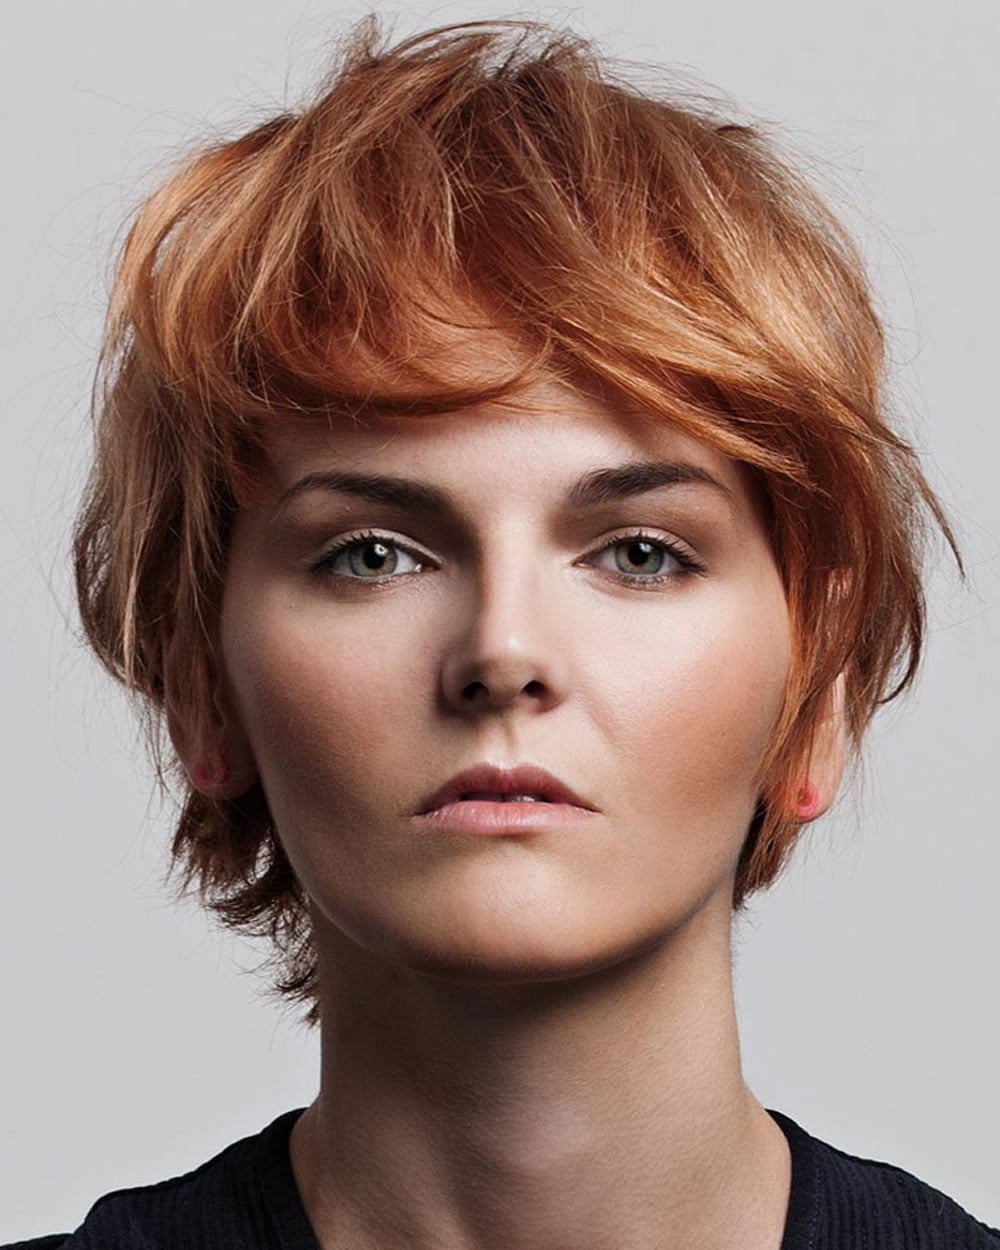 2019 Spring Short Haircut Summer 2020 Pixie Hairstyle for Girls - Page 2 - HAIRSTYLES